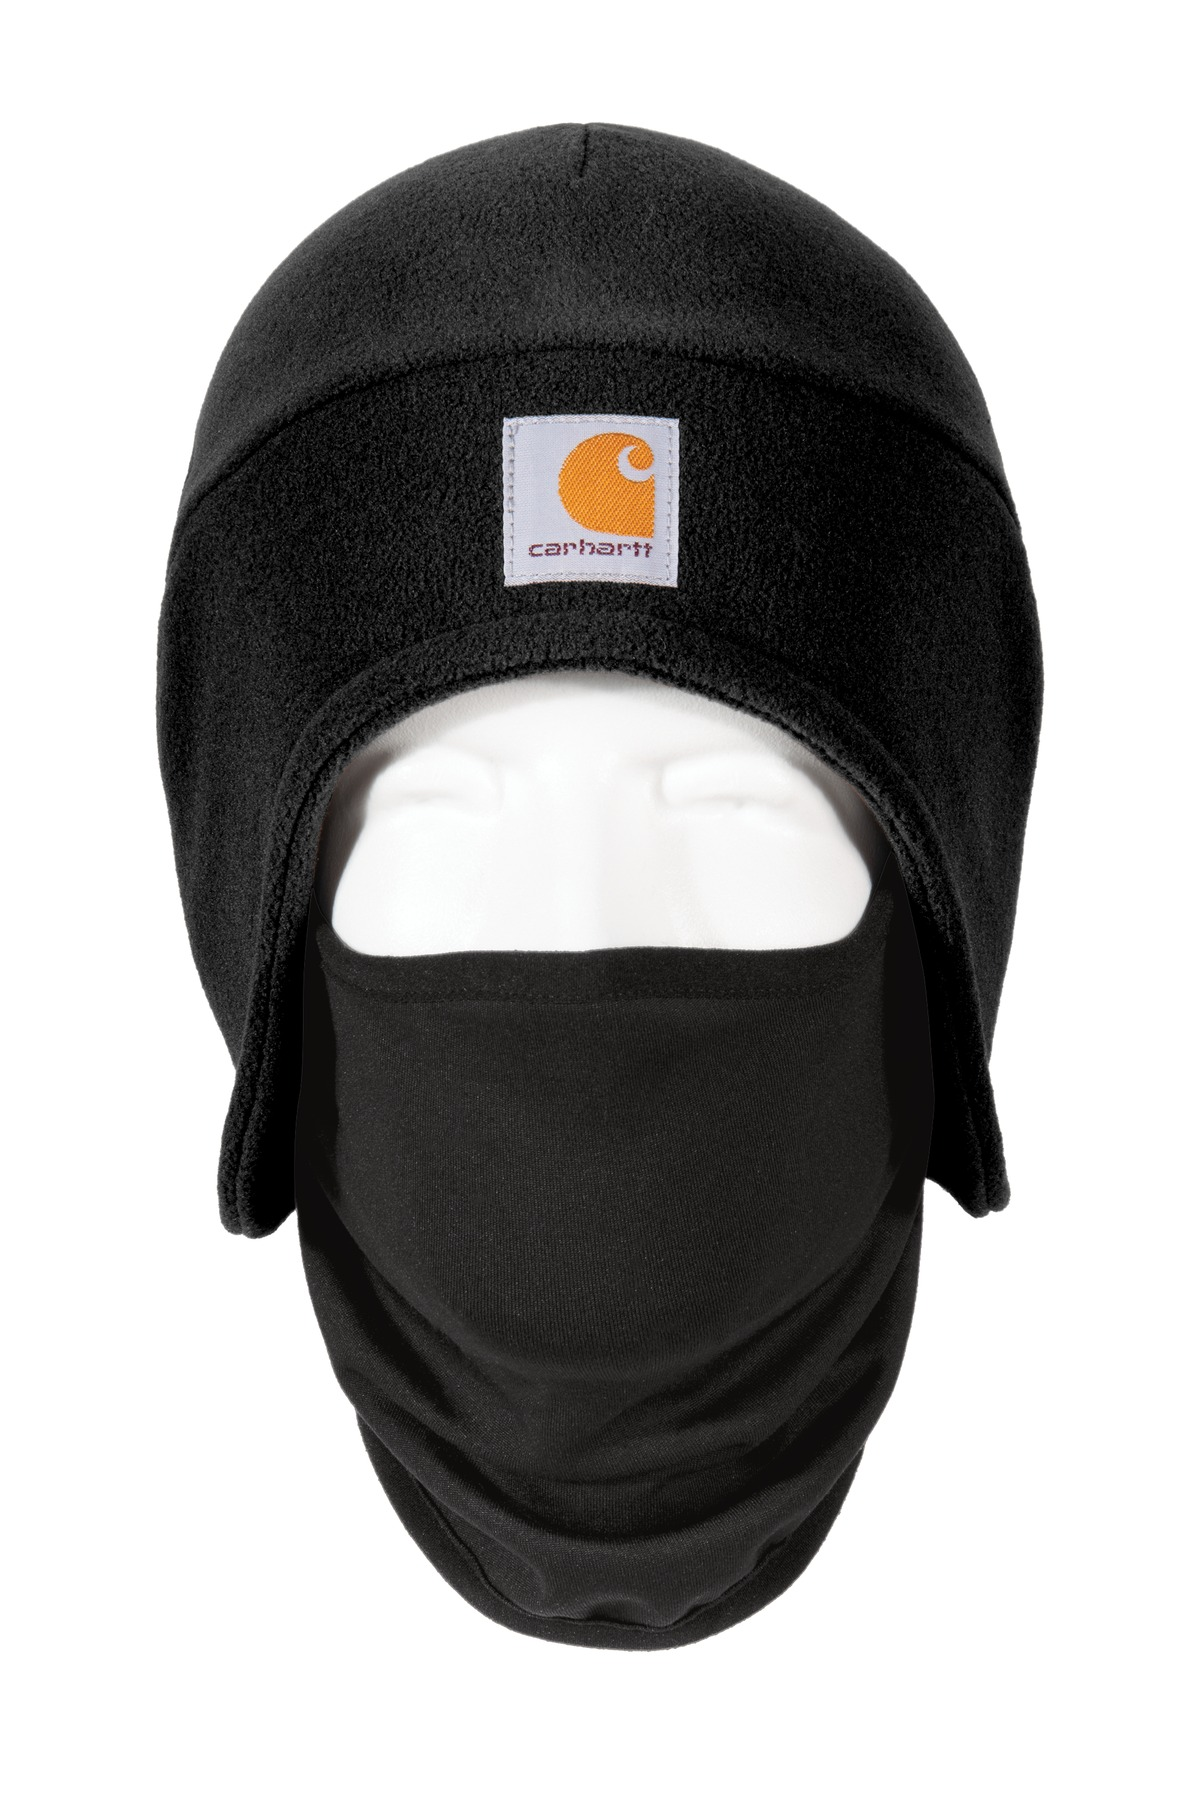 Carhartt  ®  Fleece 2-In-1 Headwear. CTA202 - Black